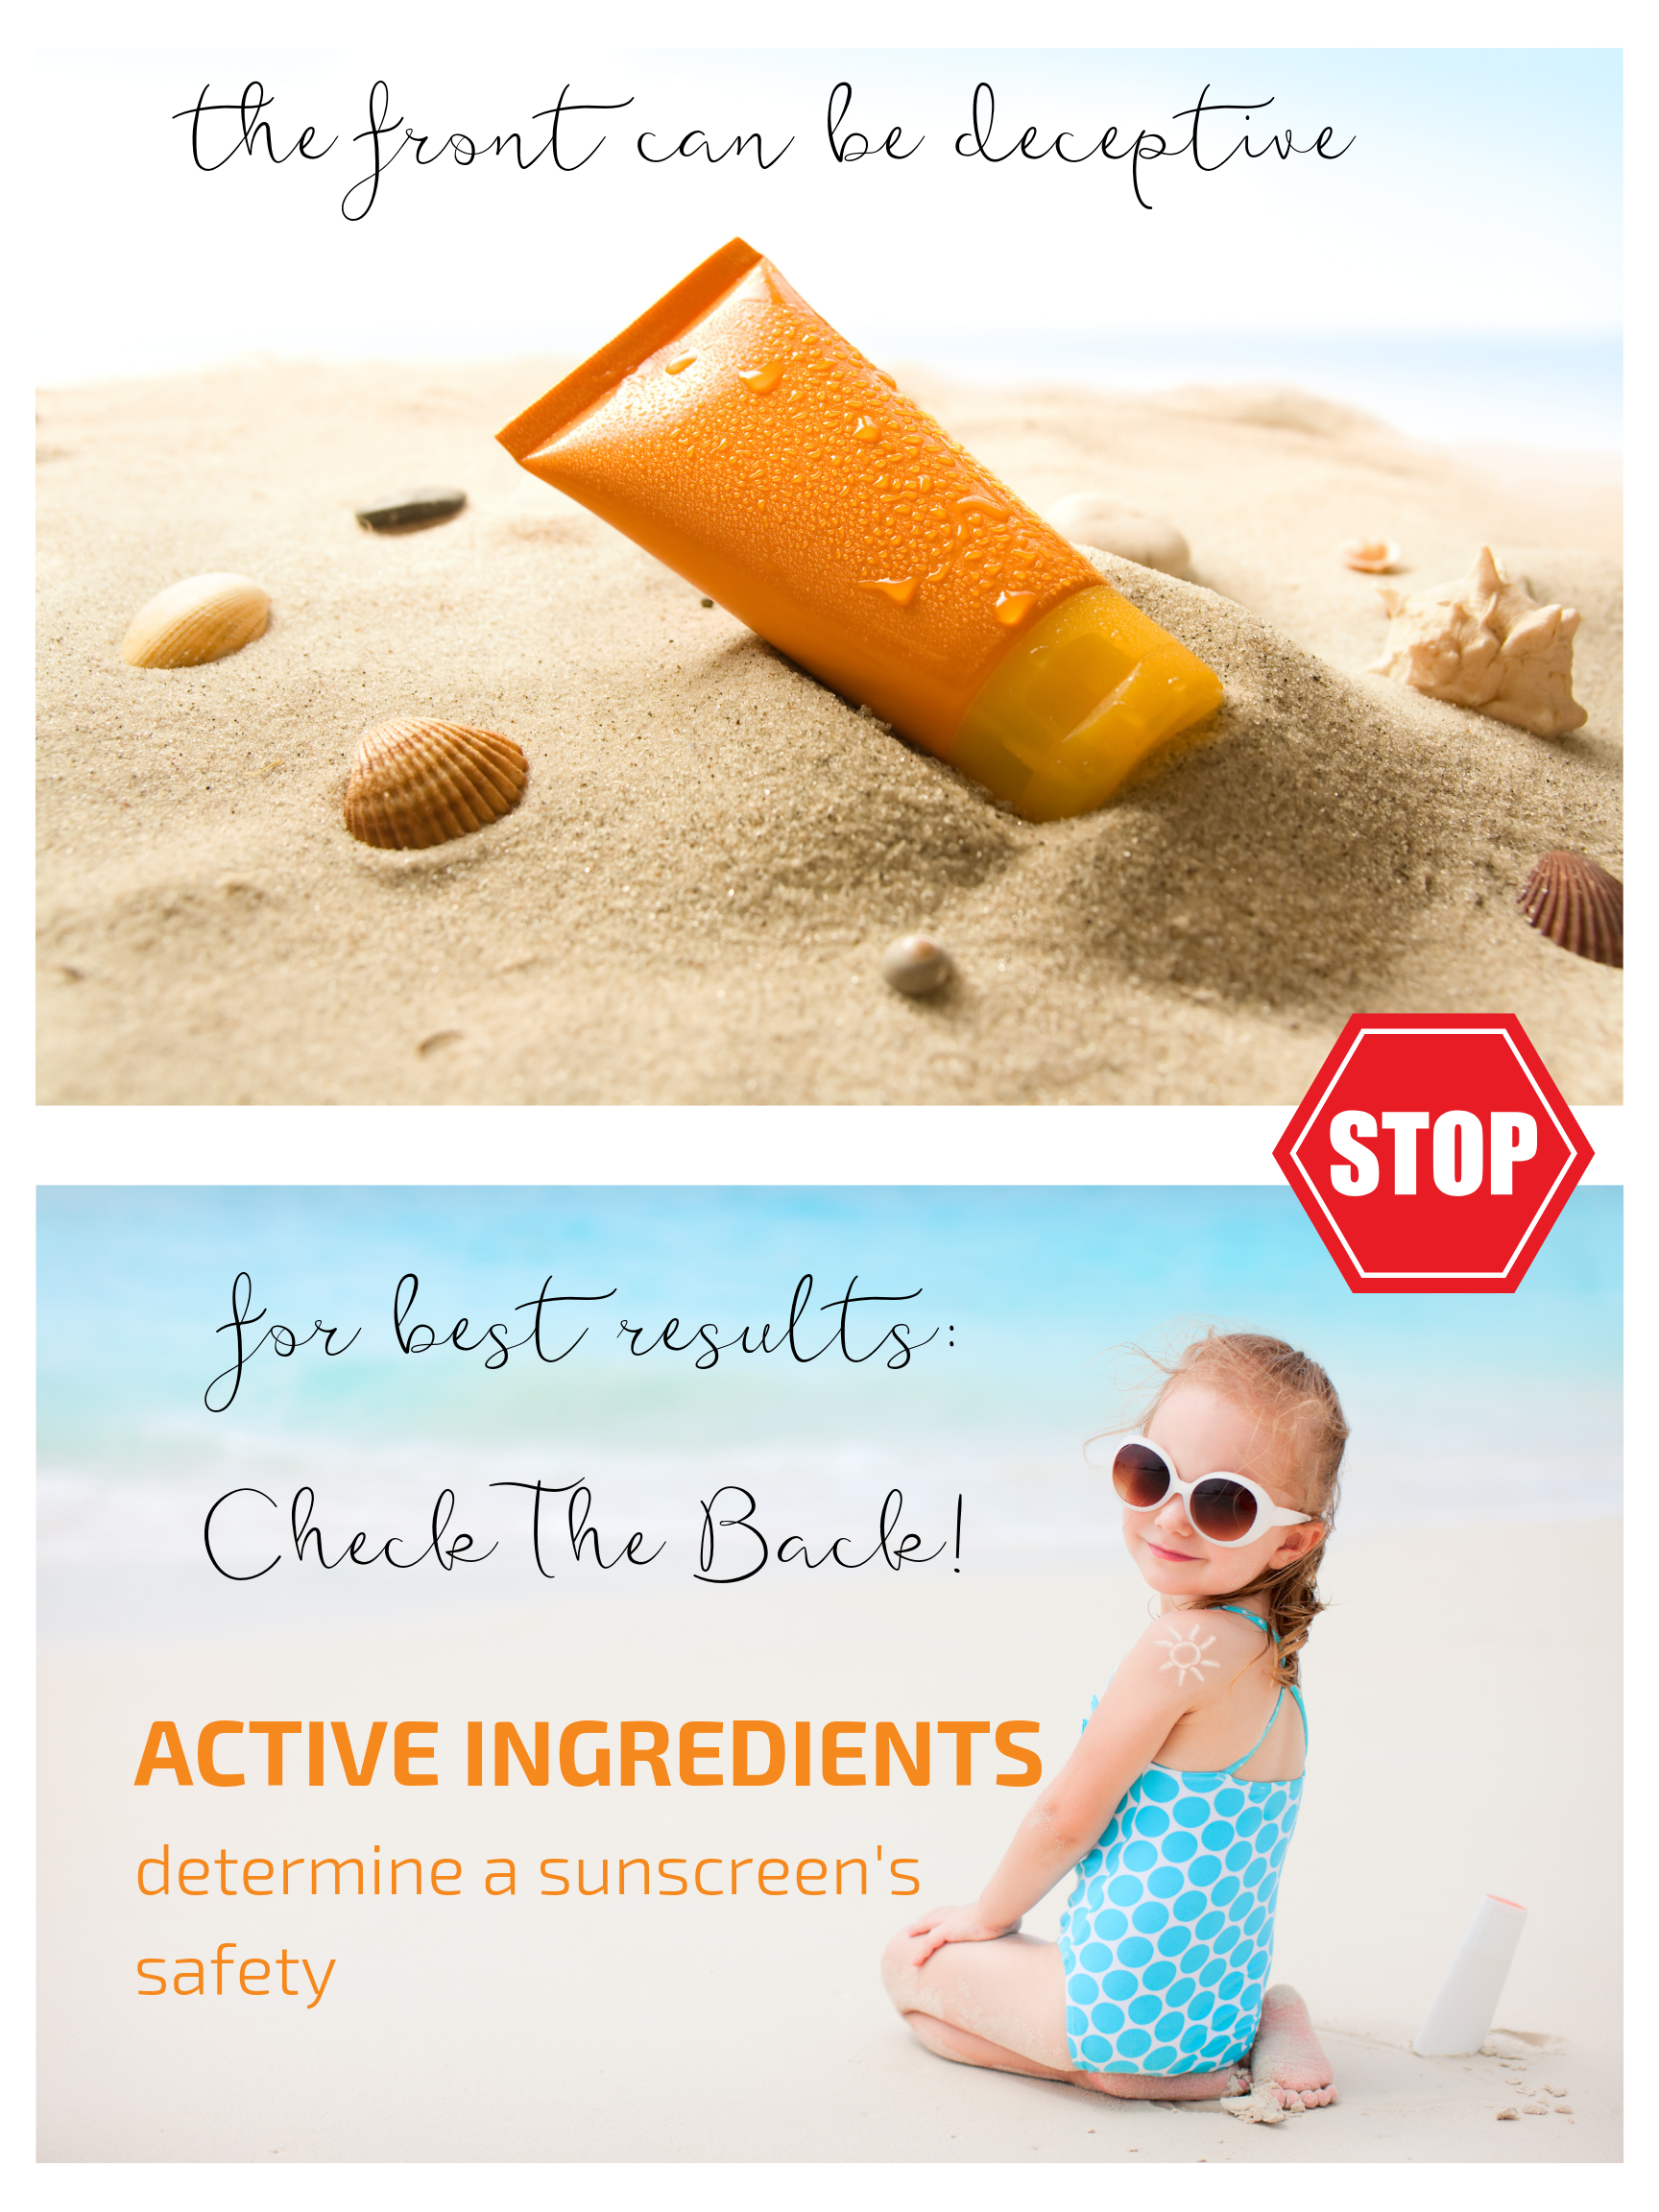 IS YOUR SUNSCREEN SAFE-the front can be deceptive-check the back.png